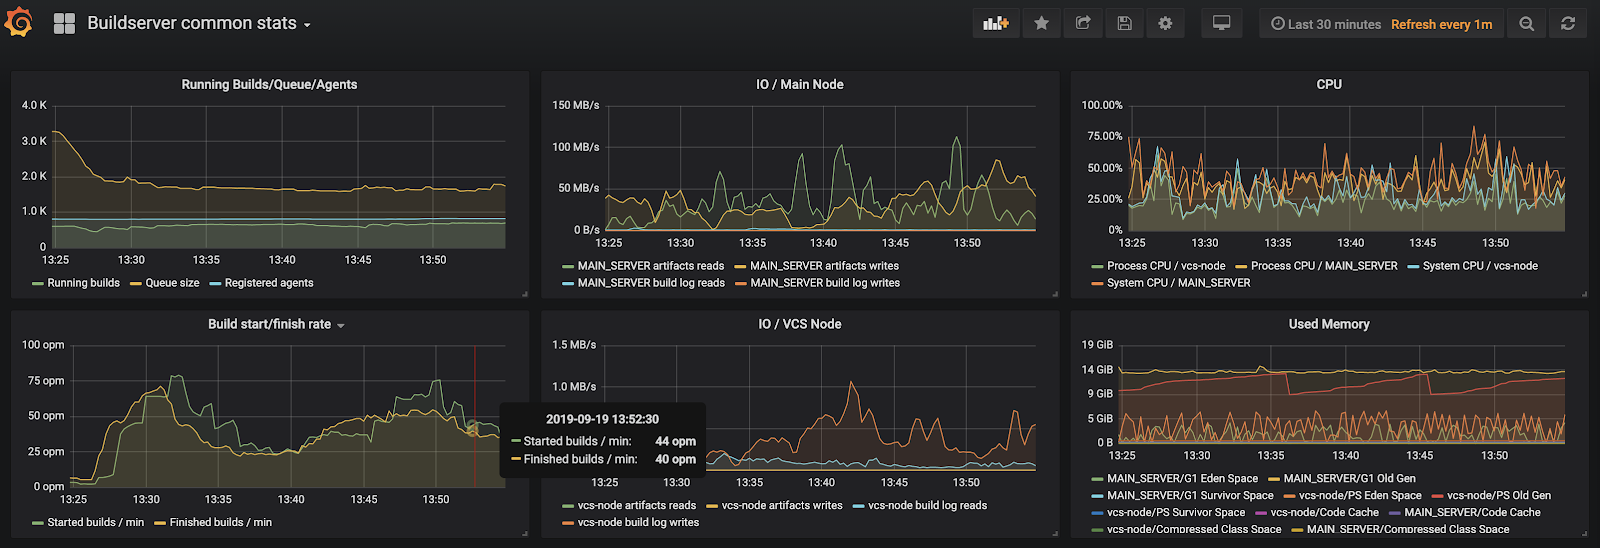 Example of TeamCity metrics represented in Grafana